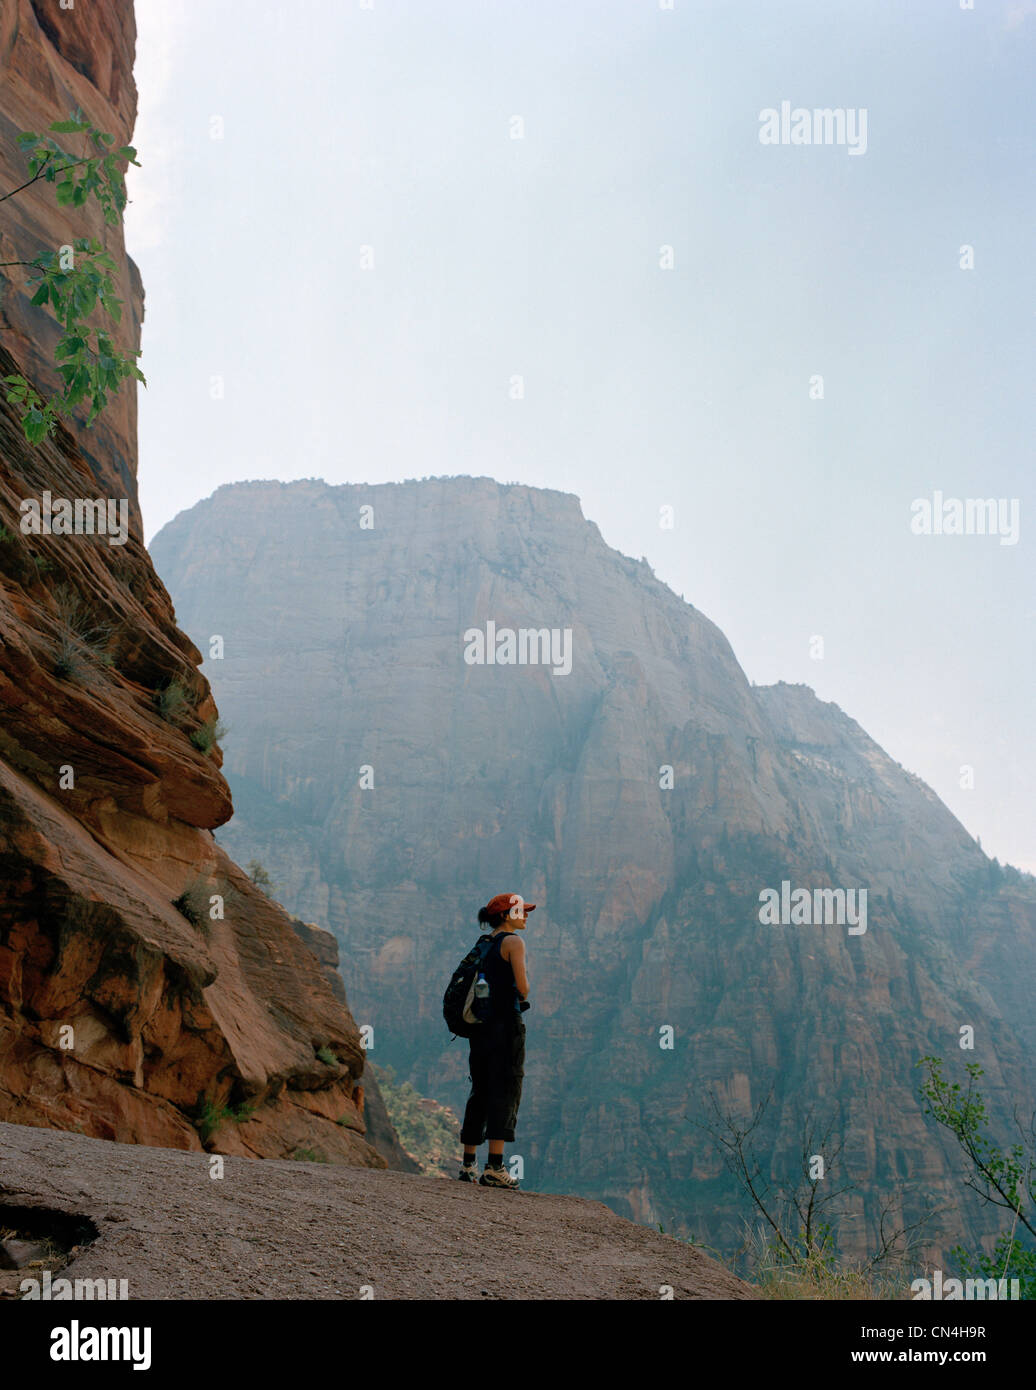 Woman at mountain overlook, Zion National Park, Utah - Stock Image